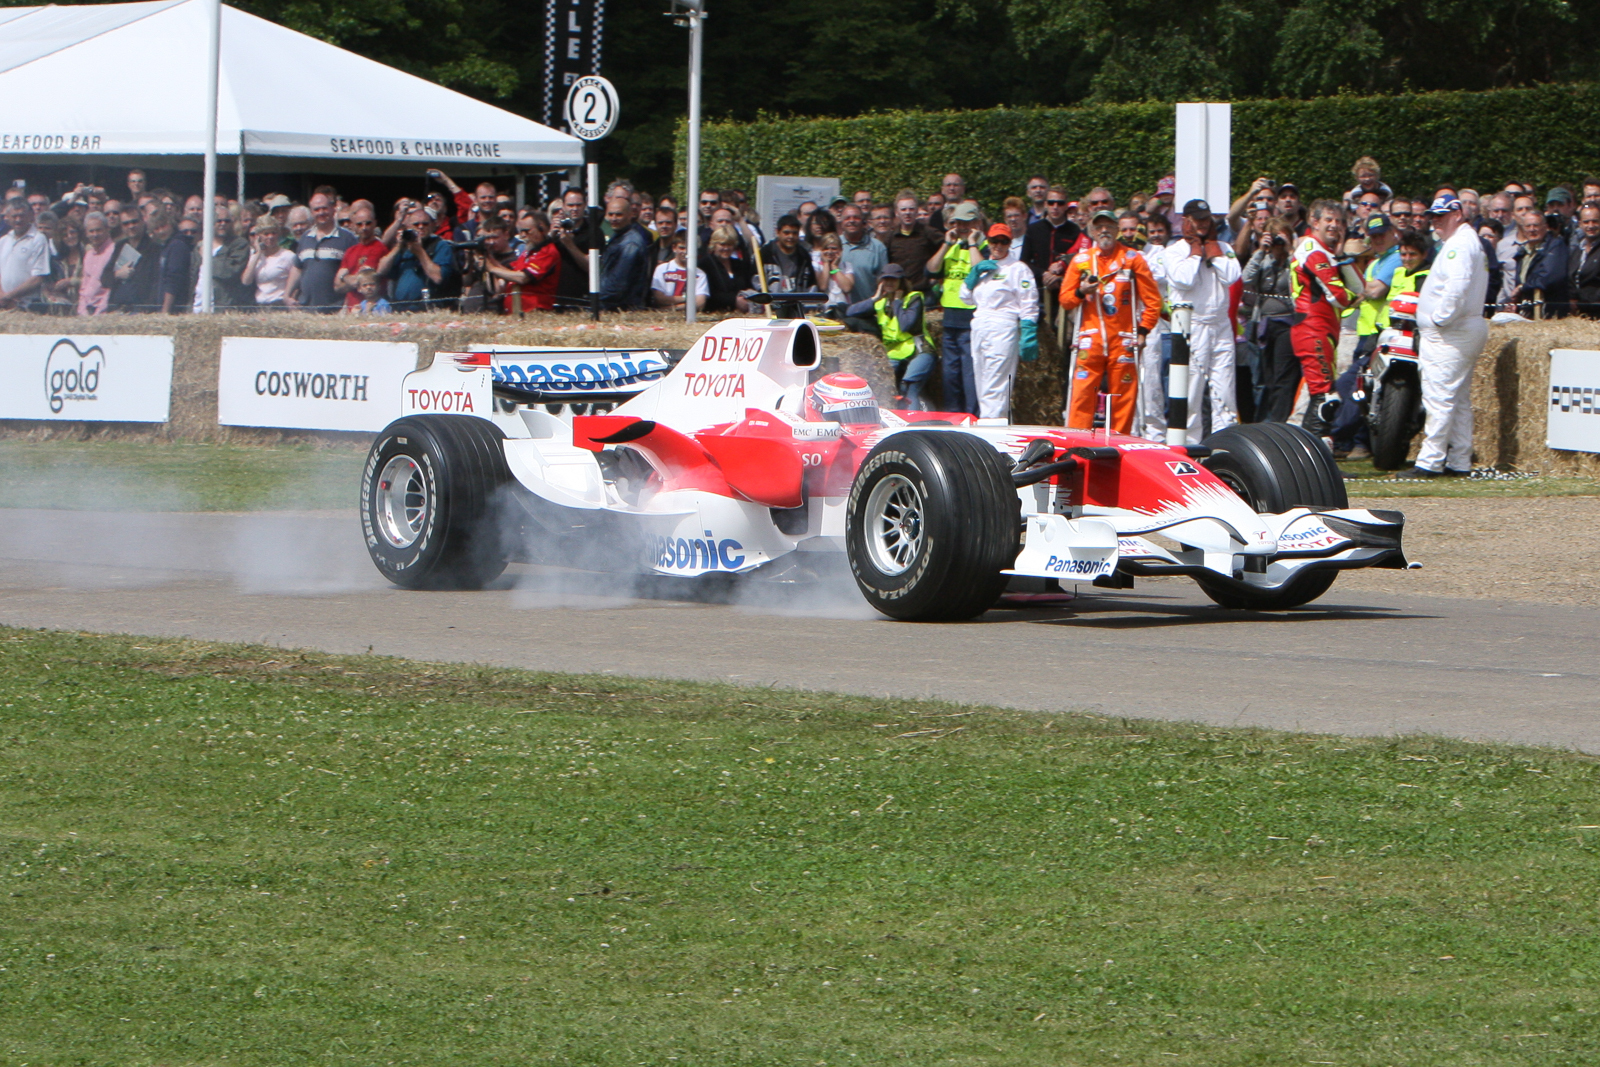 20080711 - Goodwood Festival of Speed -080711 -009